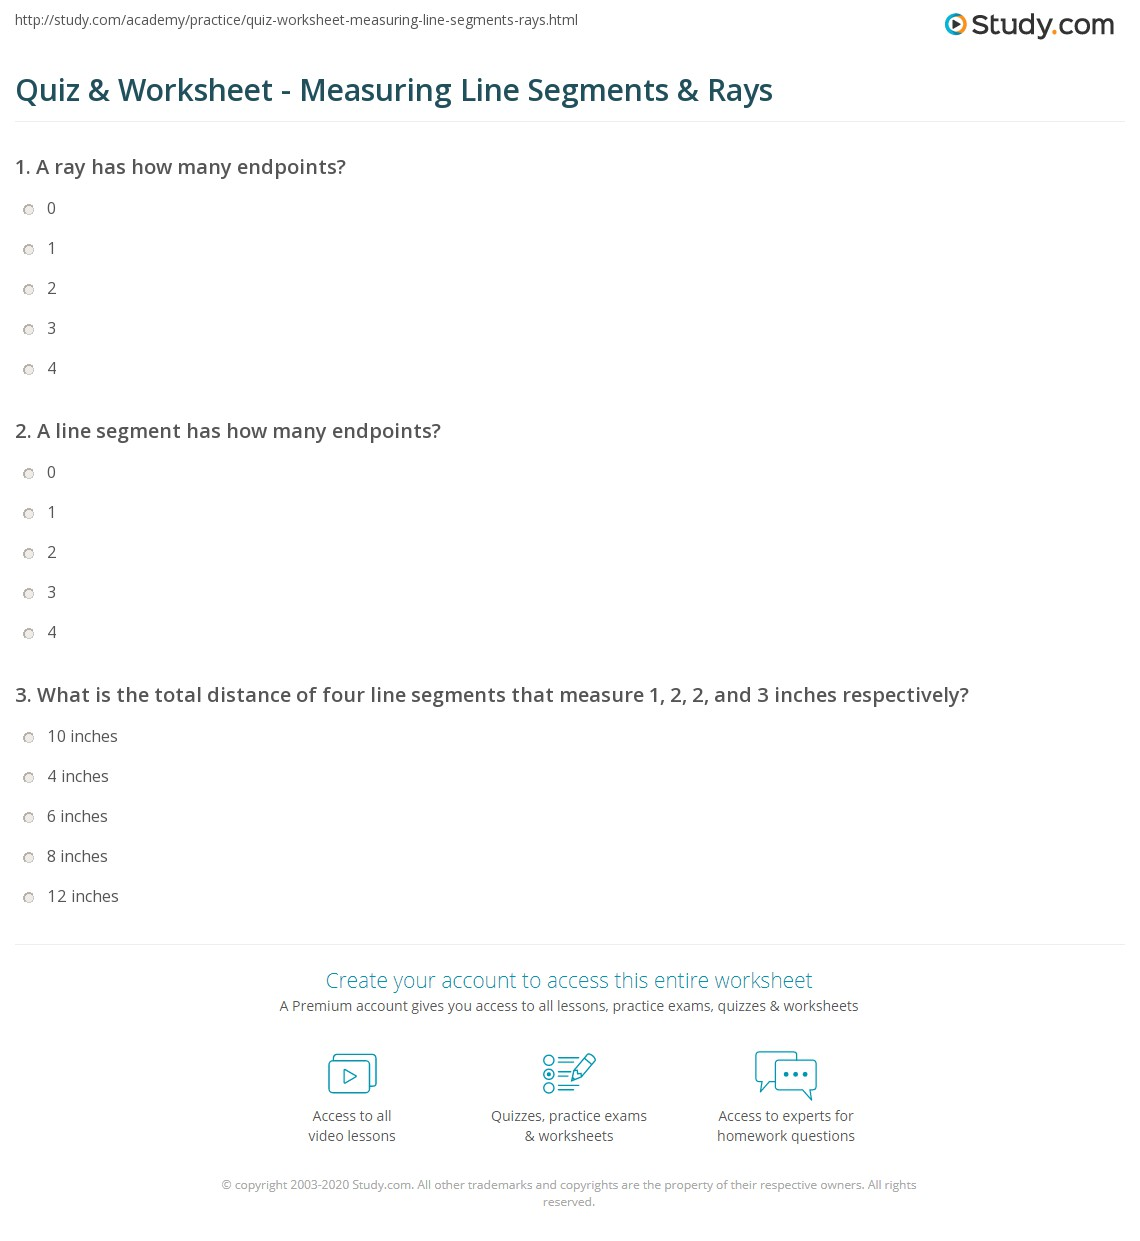 Quiz & Worksheet - Measuring Line Segments & Rays | Study.com